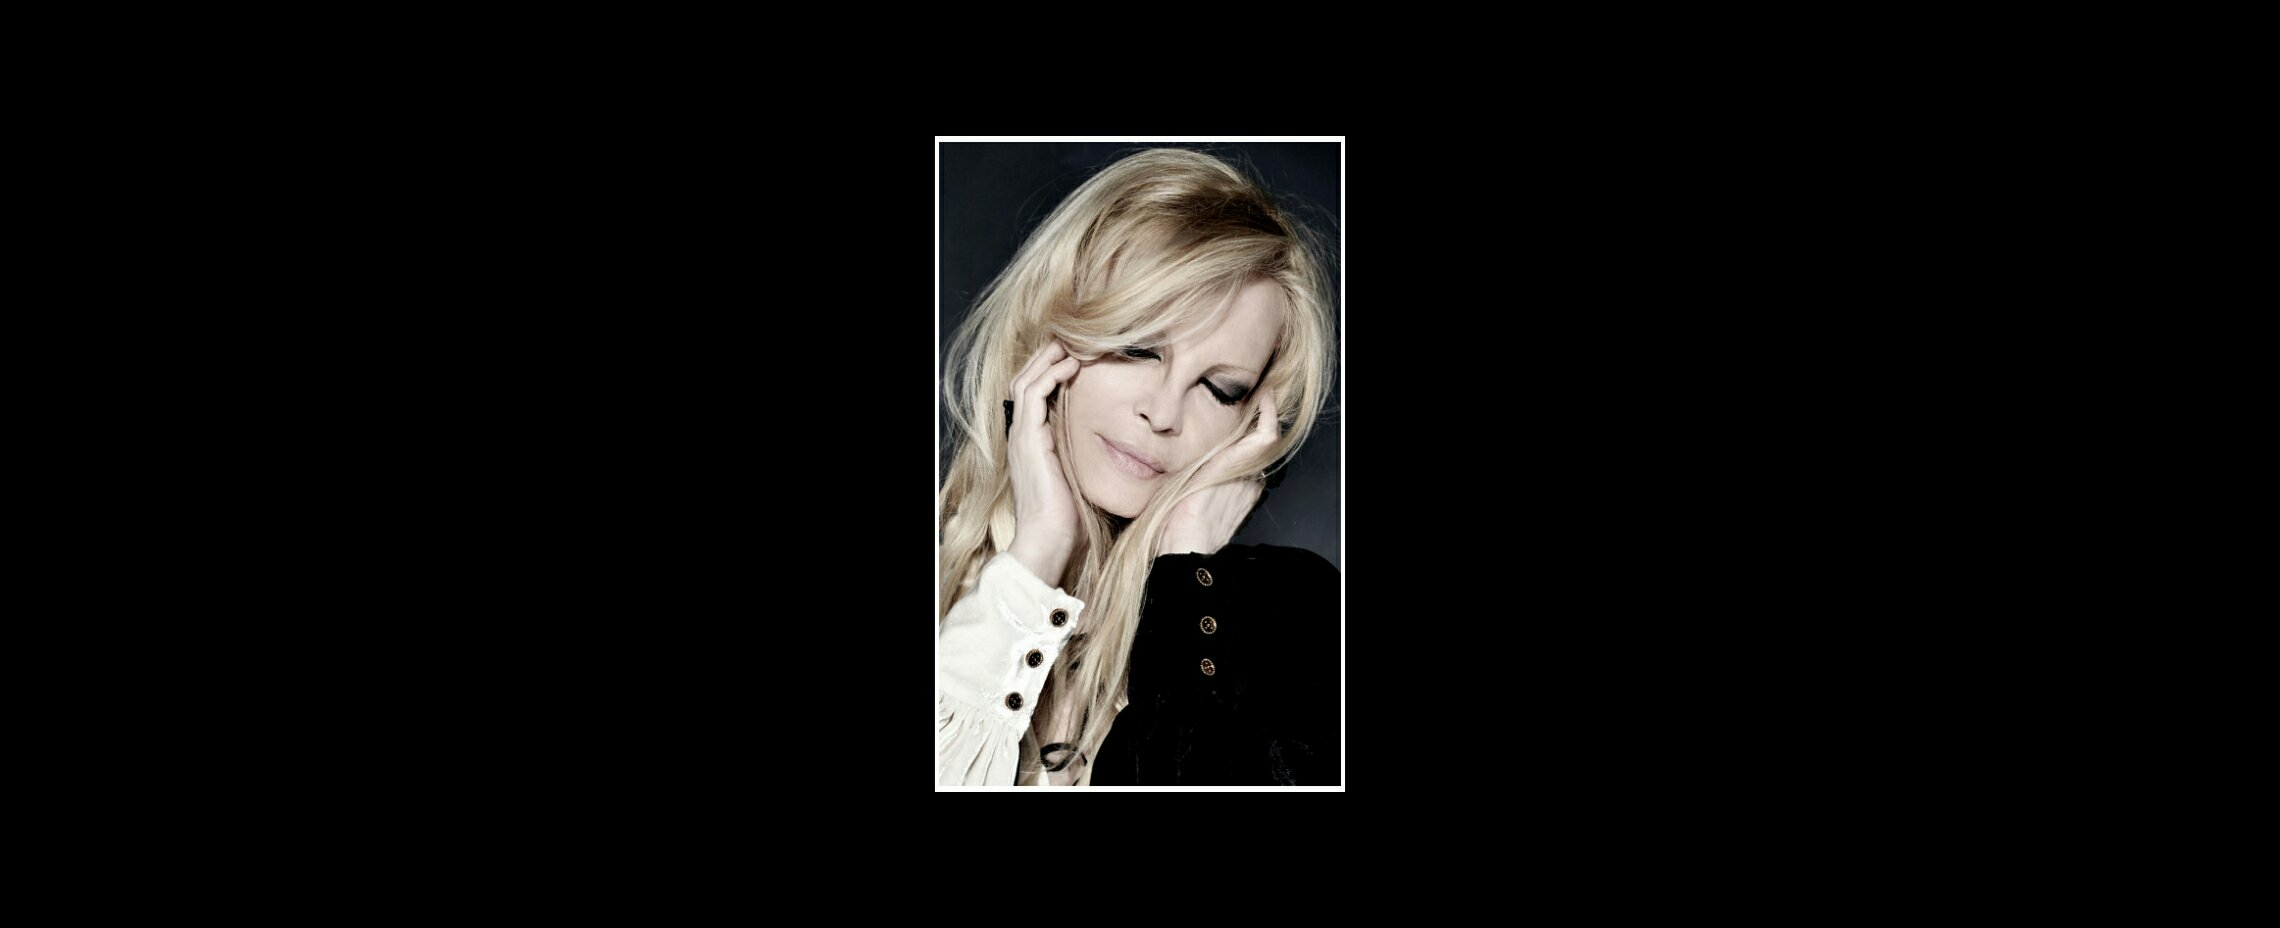 Patty Pravo ▪ PORTRAIT 2017/18